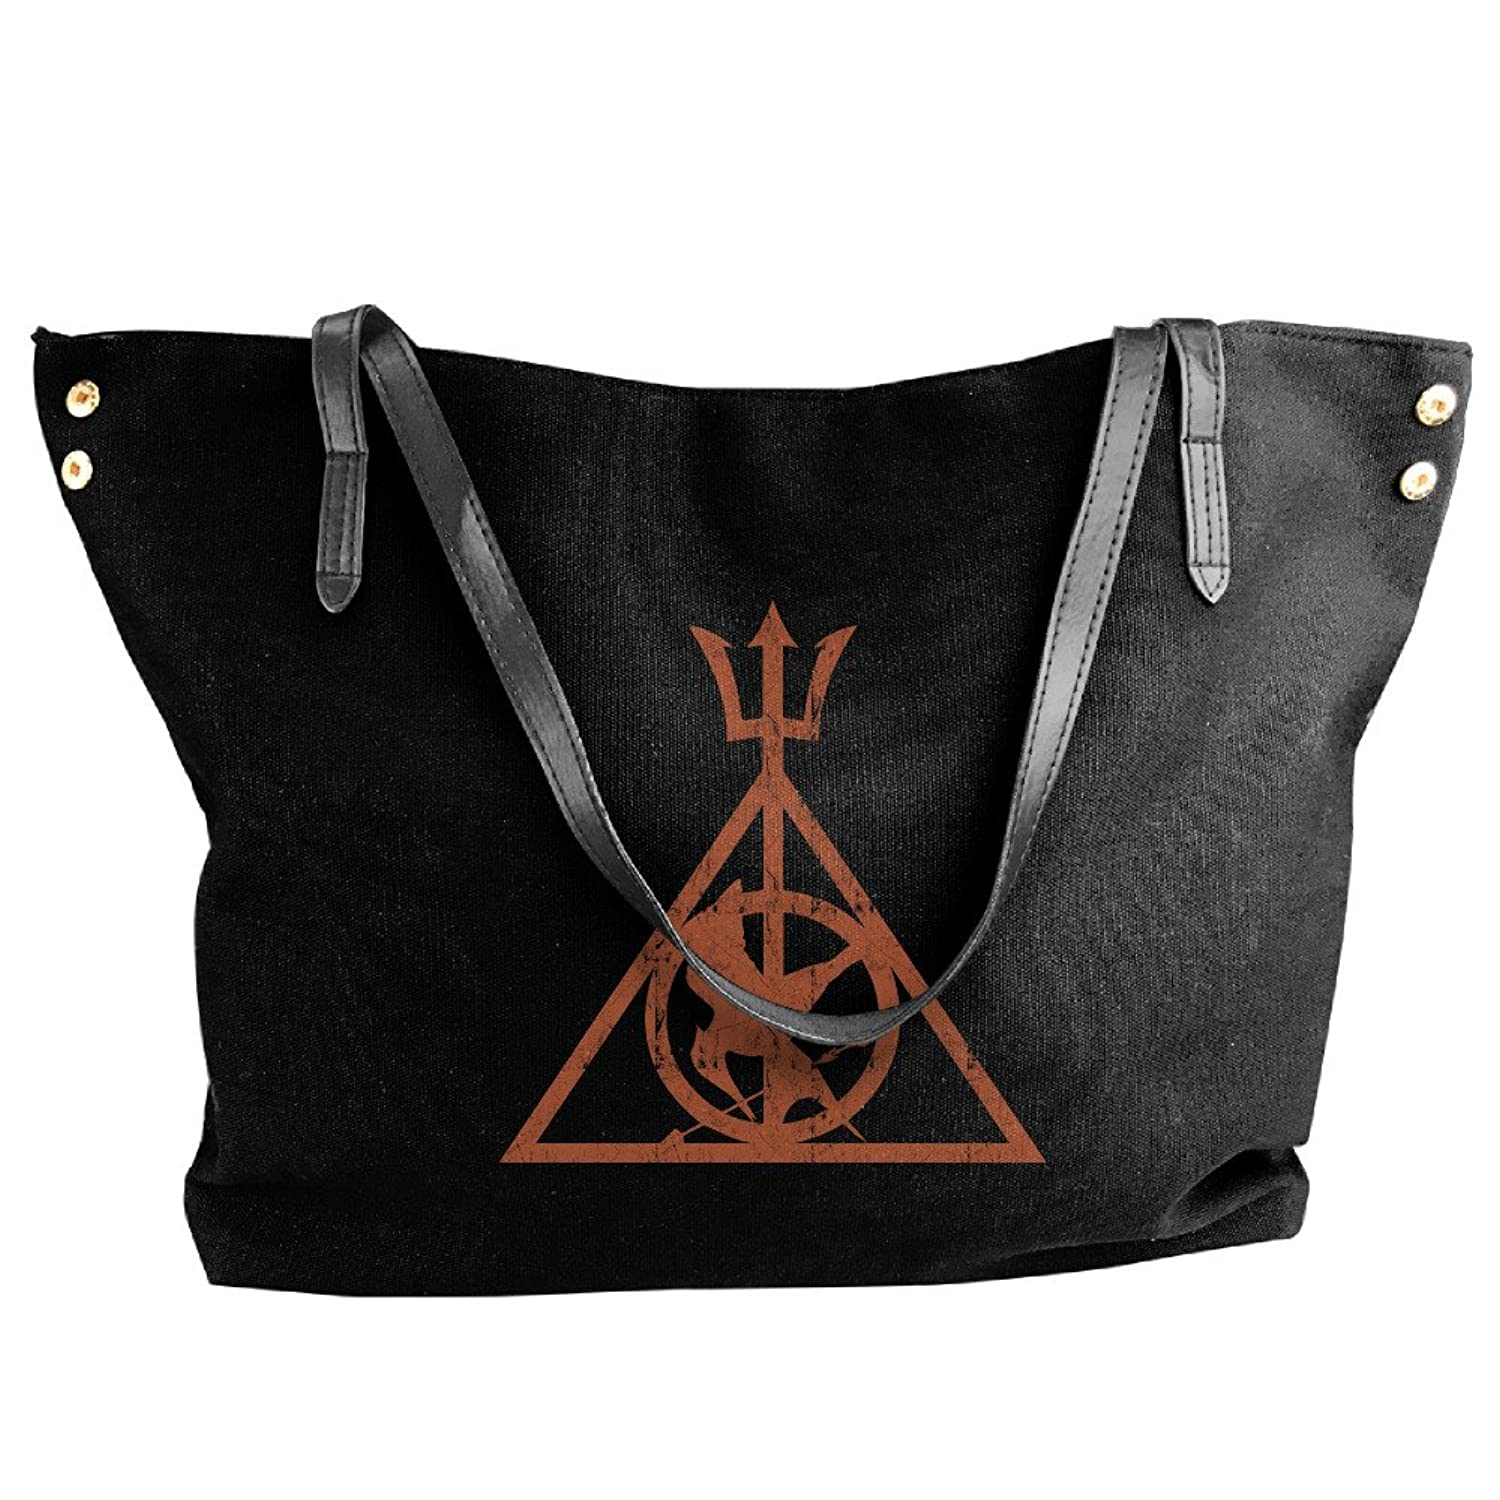 The Deathly Hallows Shoulder Tote Bag